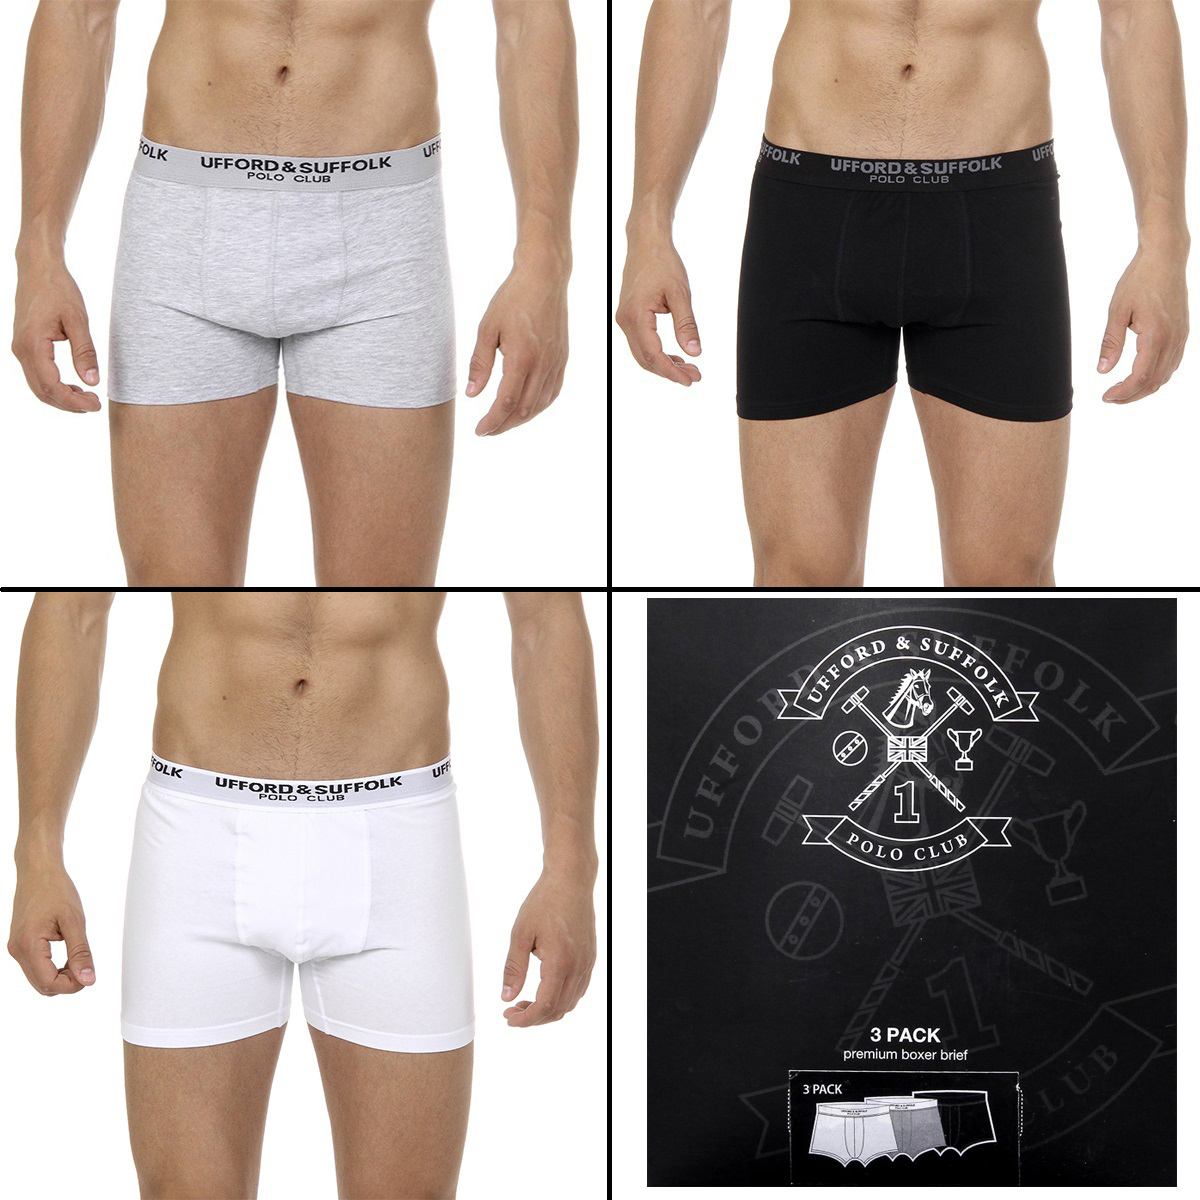 Primary image for Ufford & Suffolk Polo Club Mens Three pack boxer trunk US100